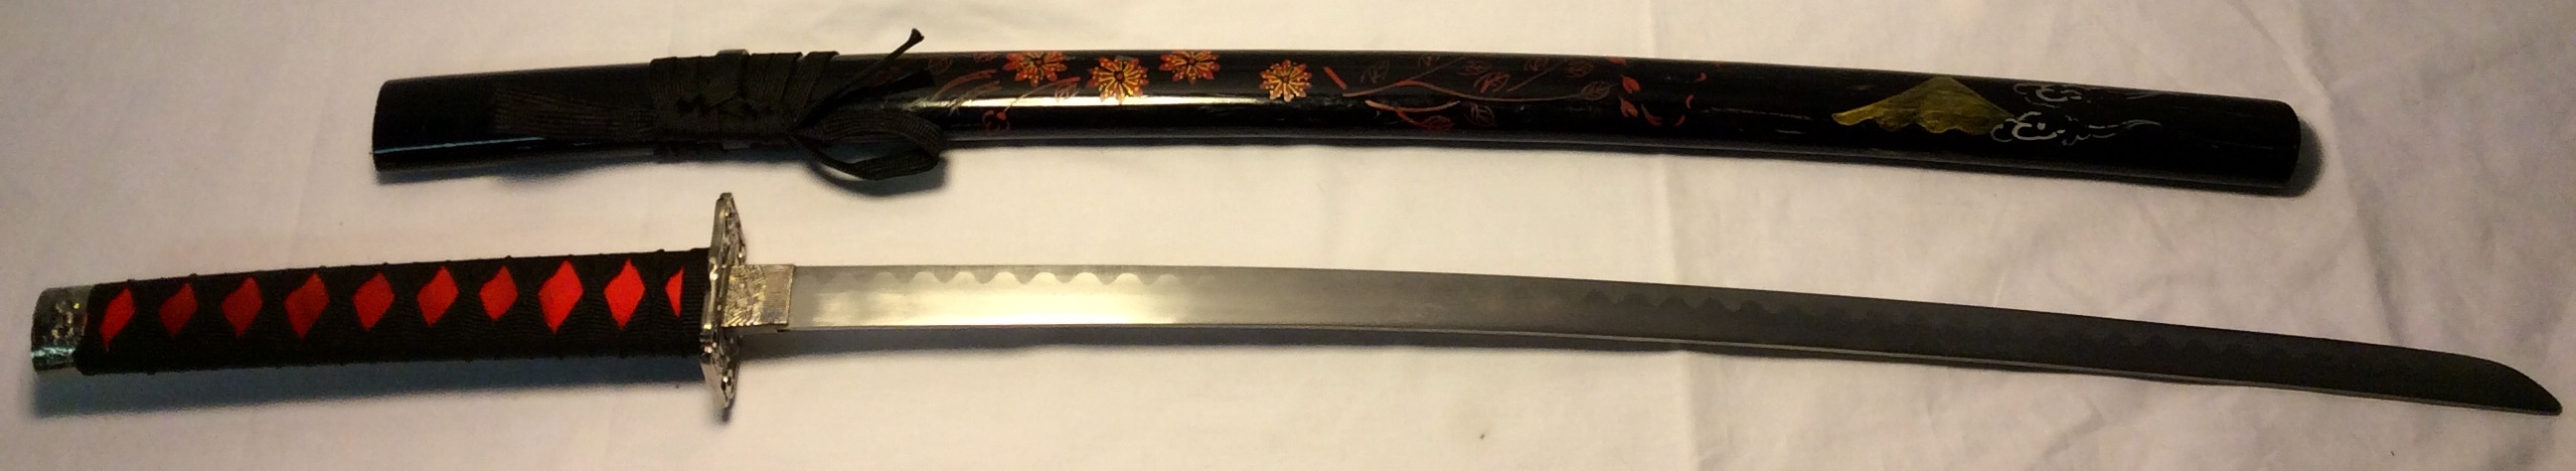 Katana with black saya with flowers